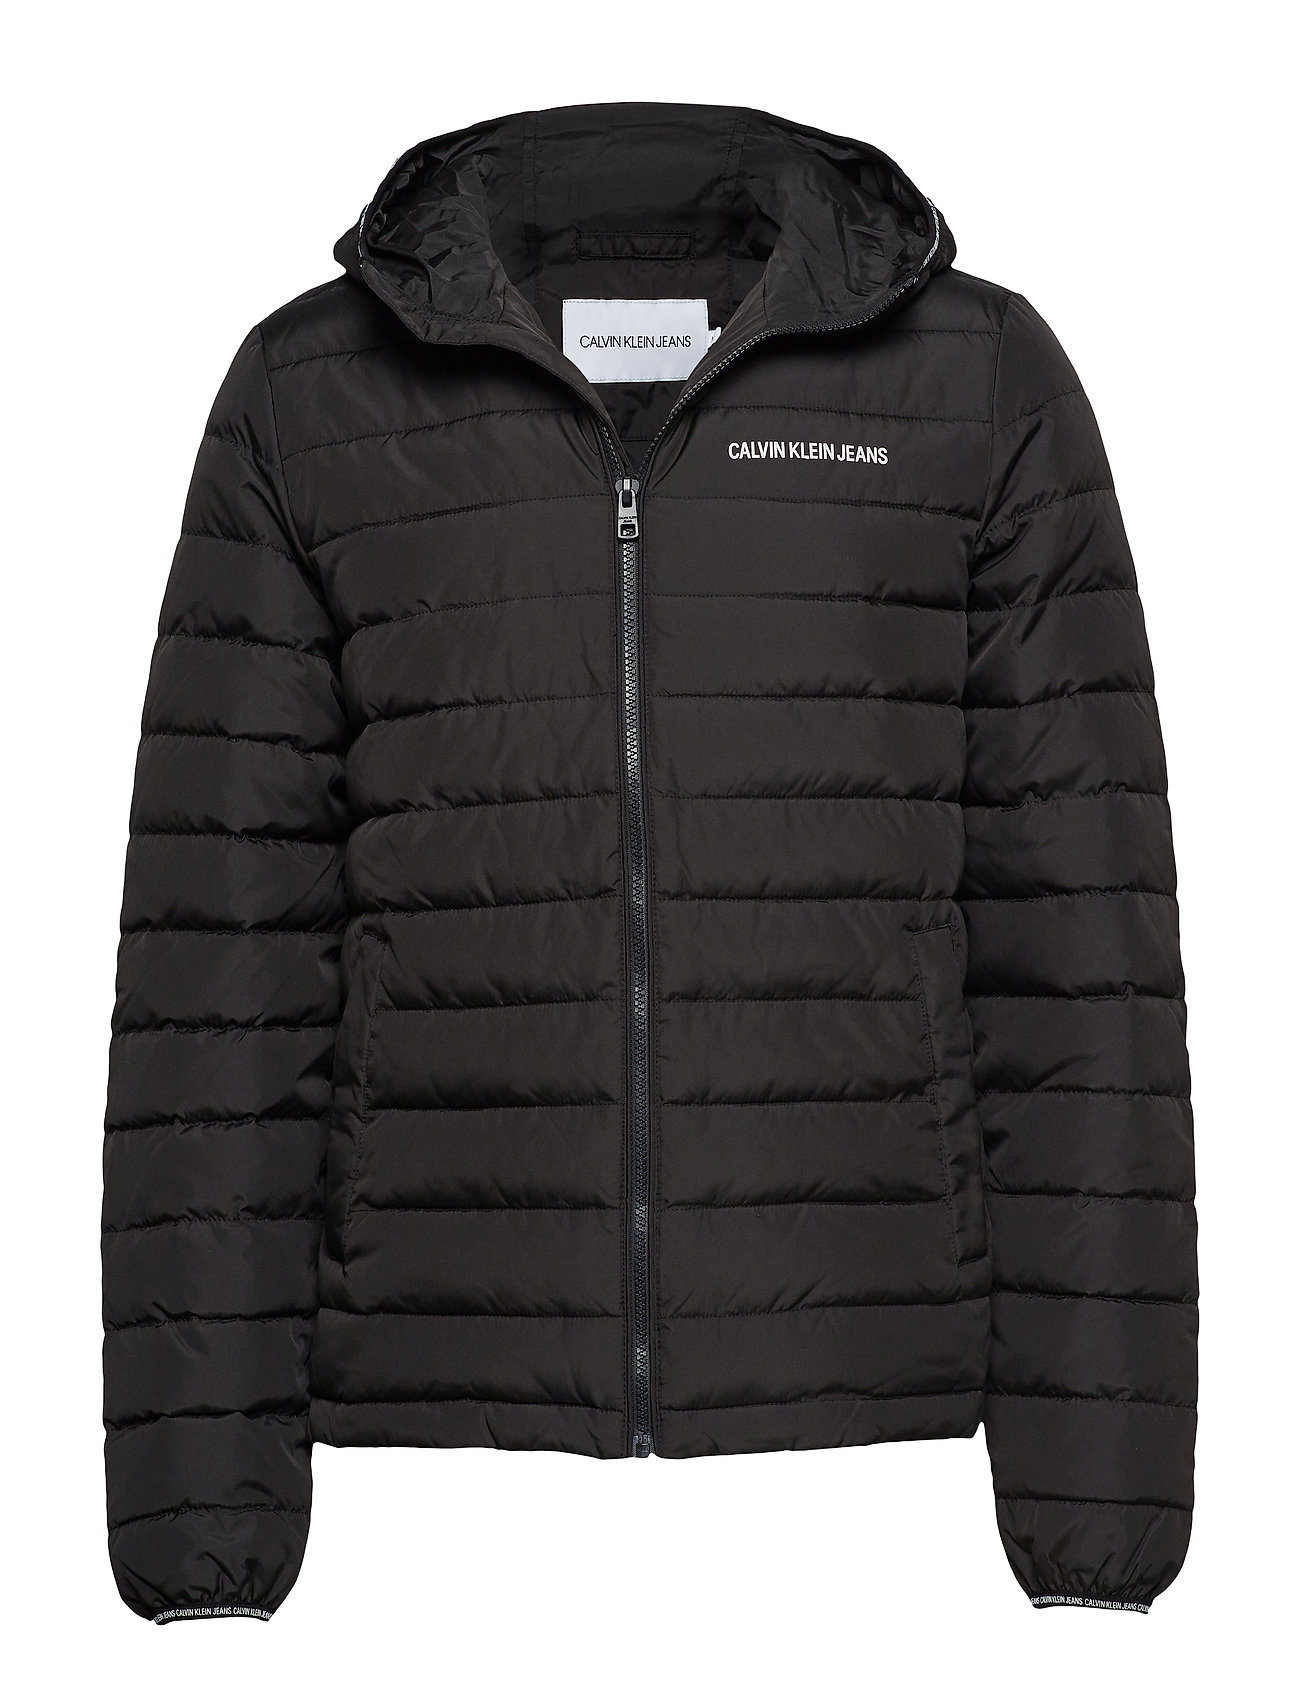 Calvin Klein Jeans PADDED HOODED JACKET - CK BLACK